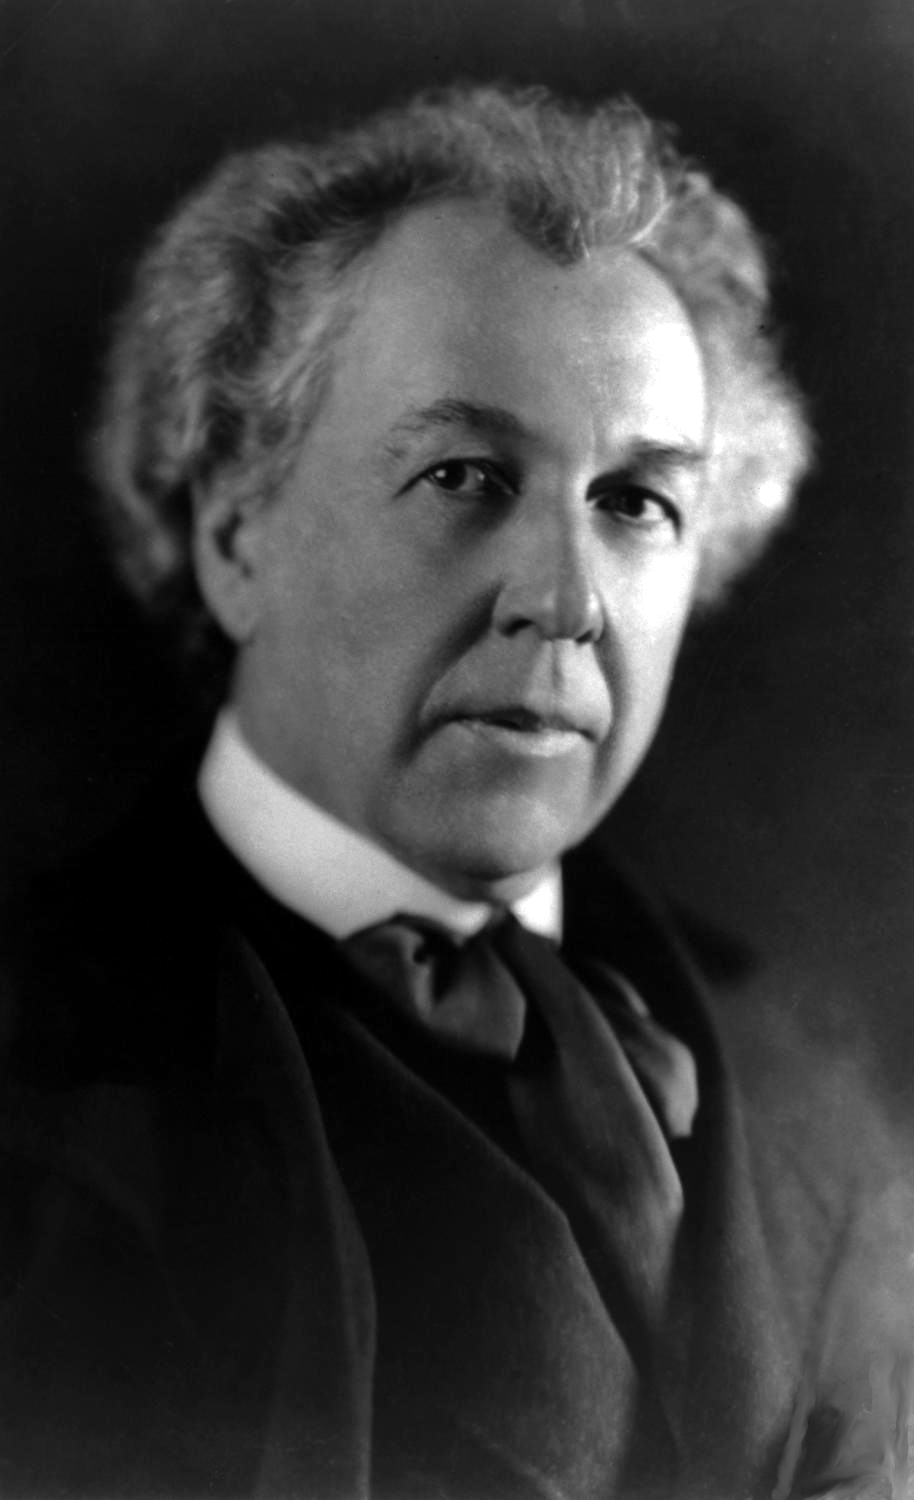 Image of Frank Lloyd Wright from Wikidata